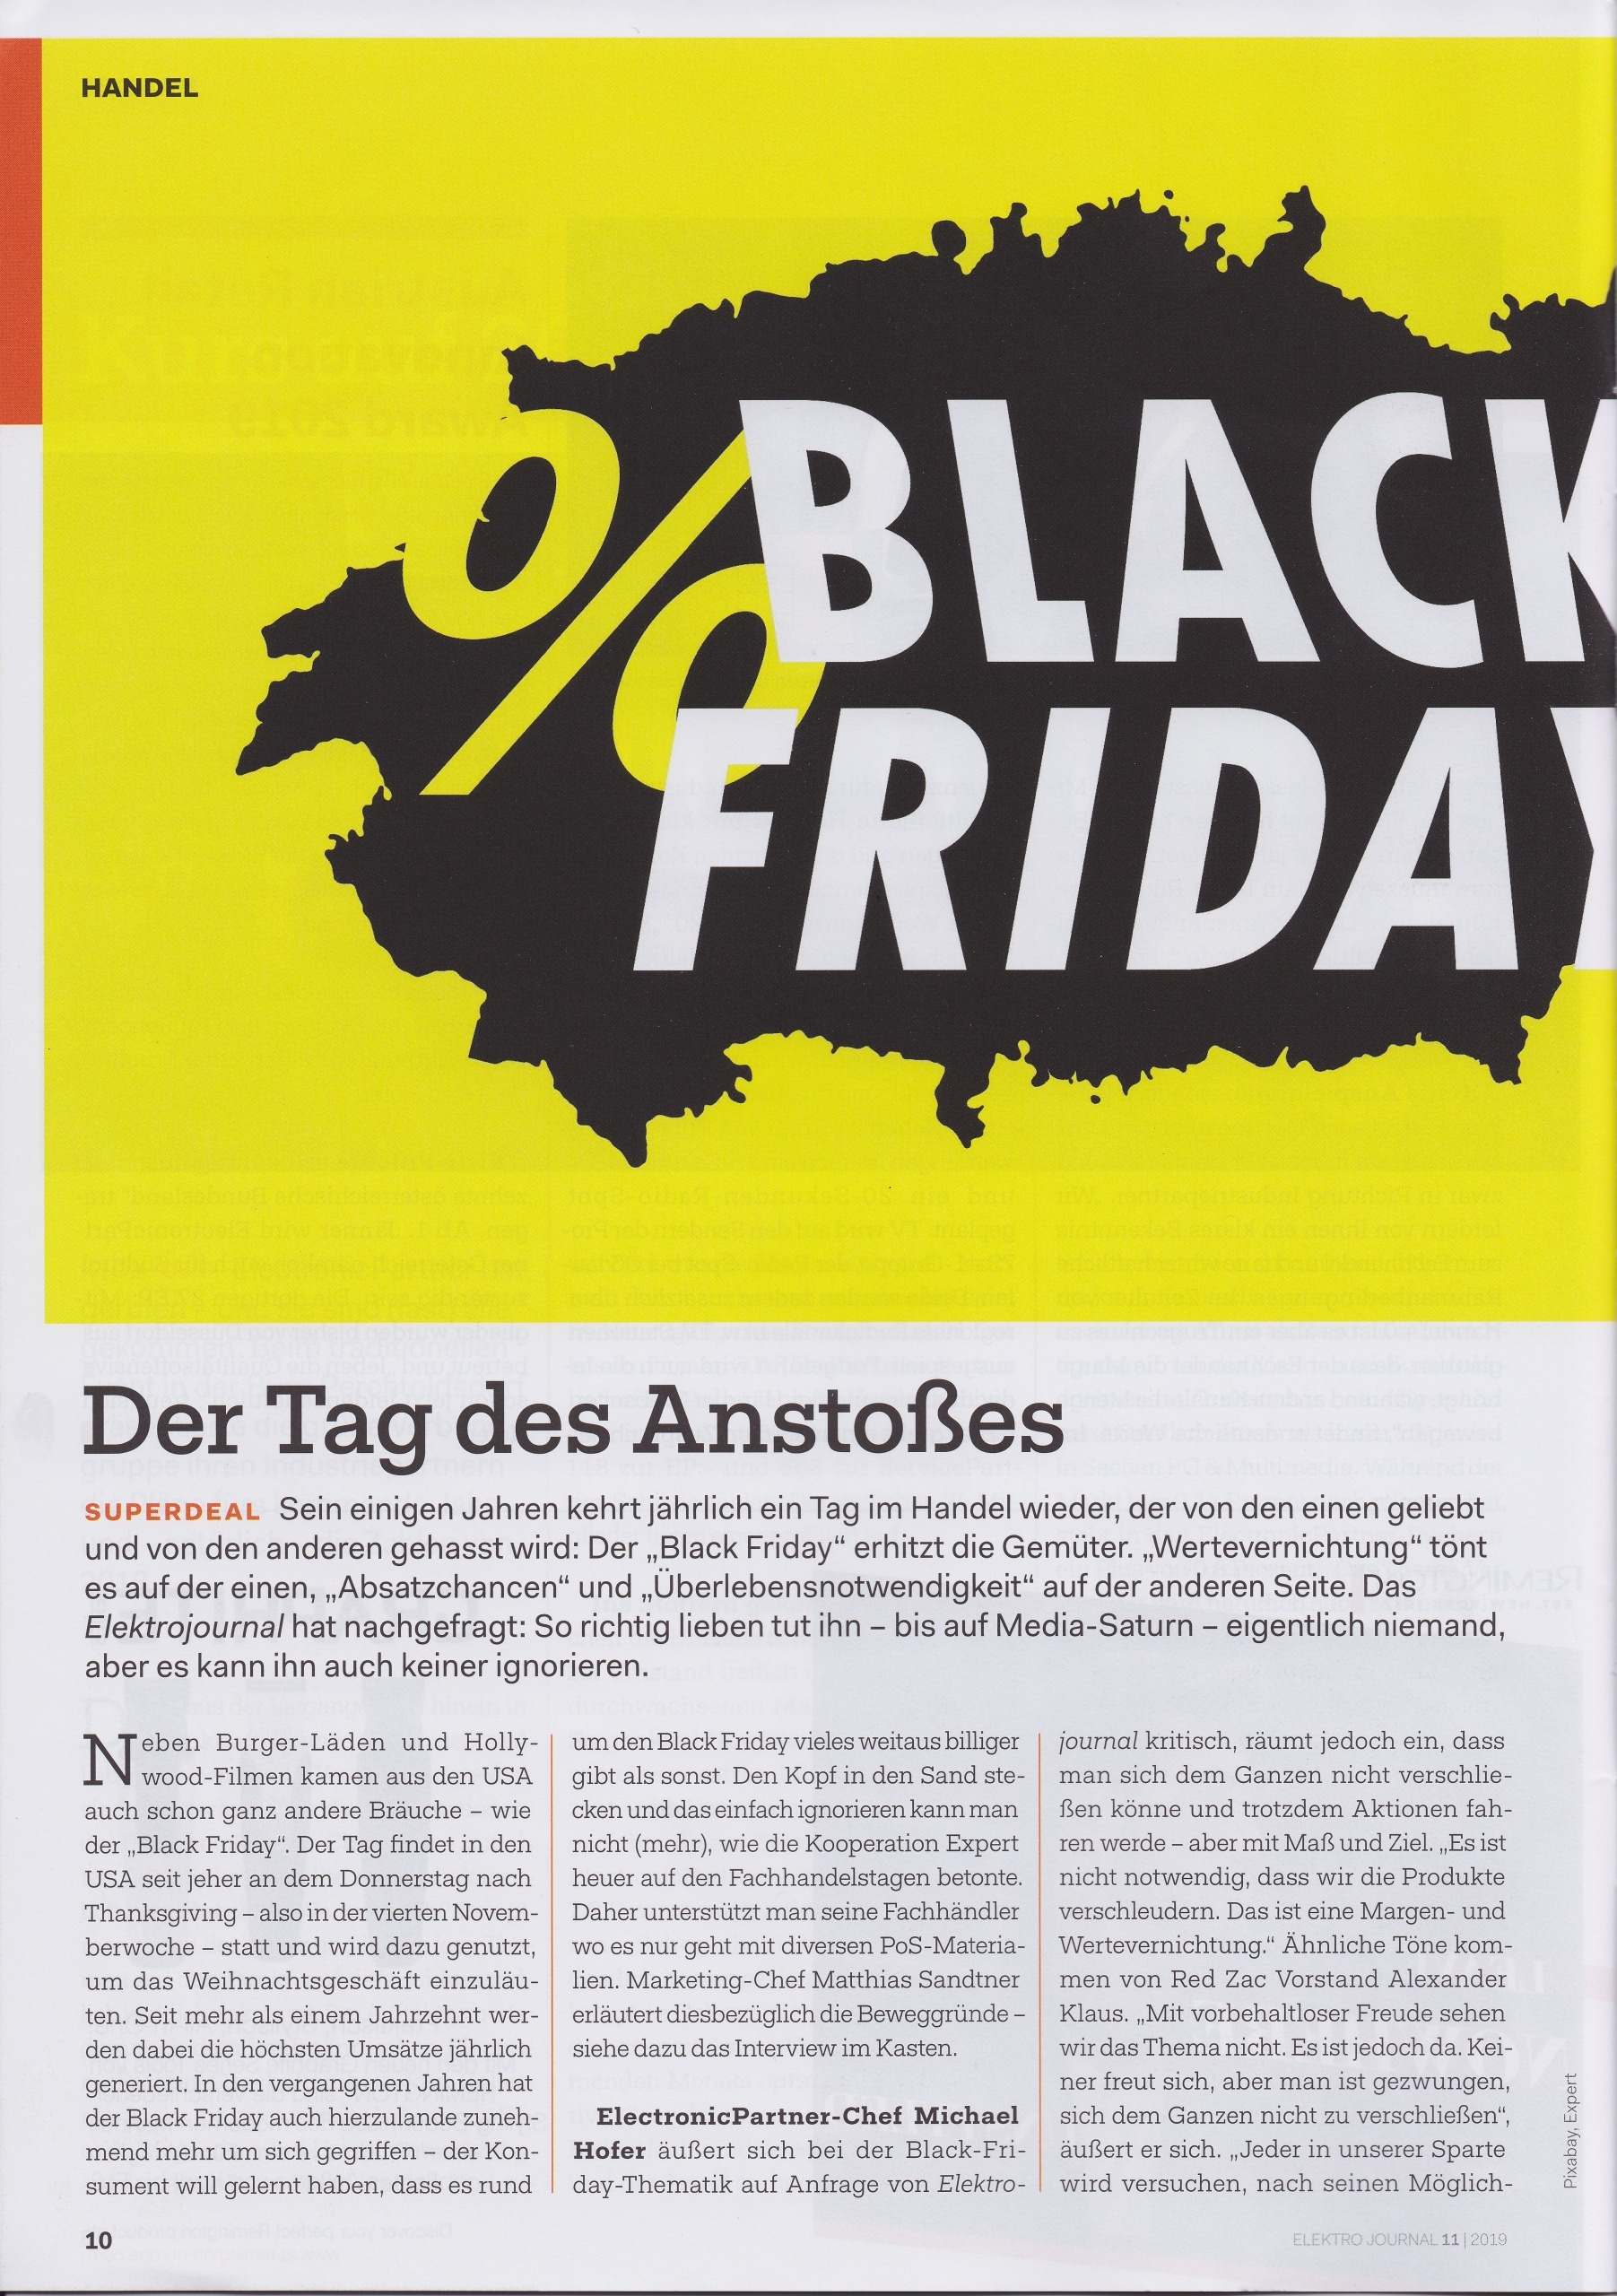 Black Friday 2019 - Mag. Roman Kmenta - Elektrojournal 11-2019 1